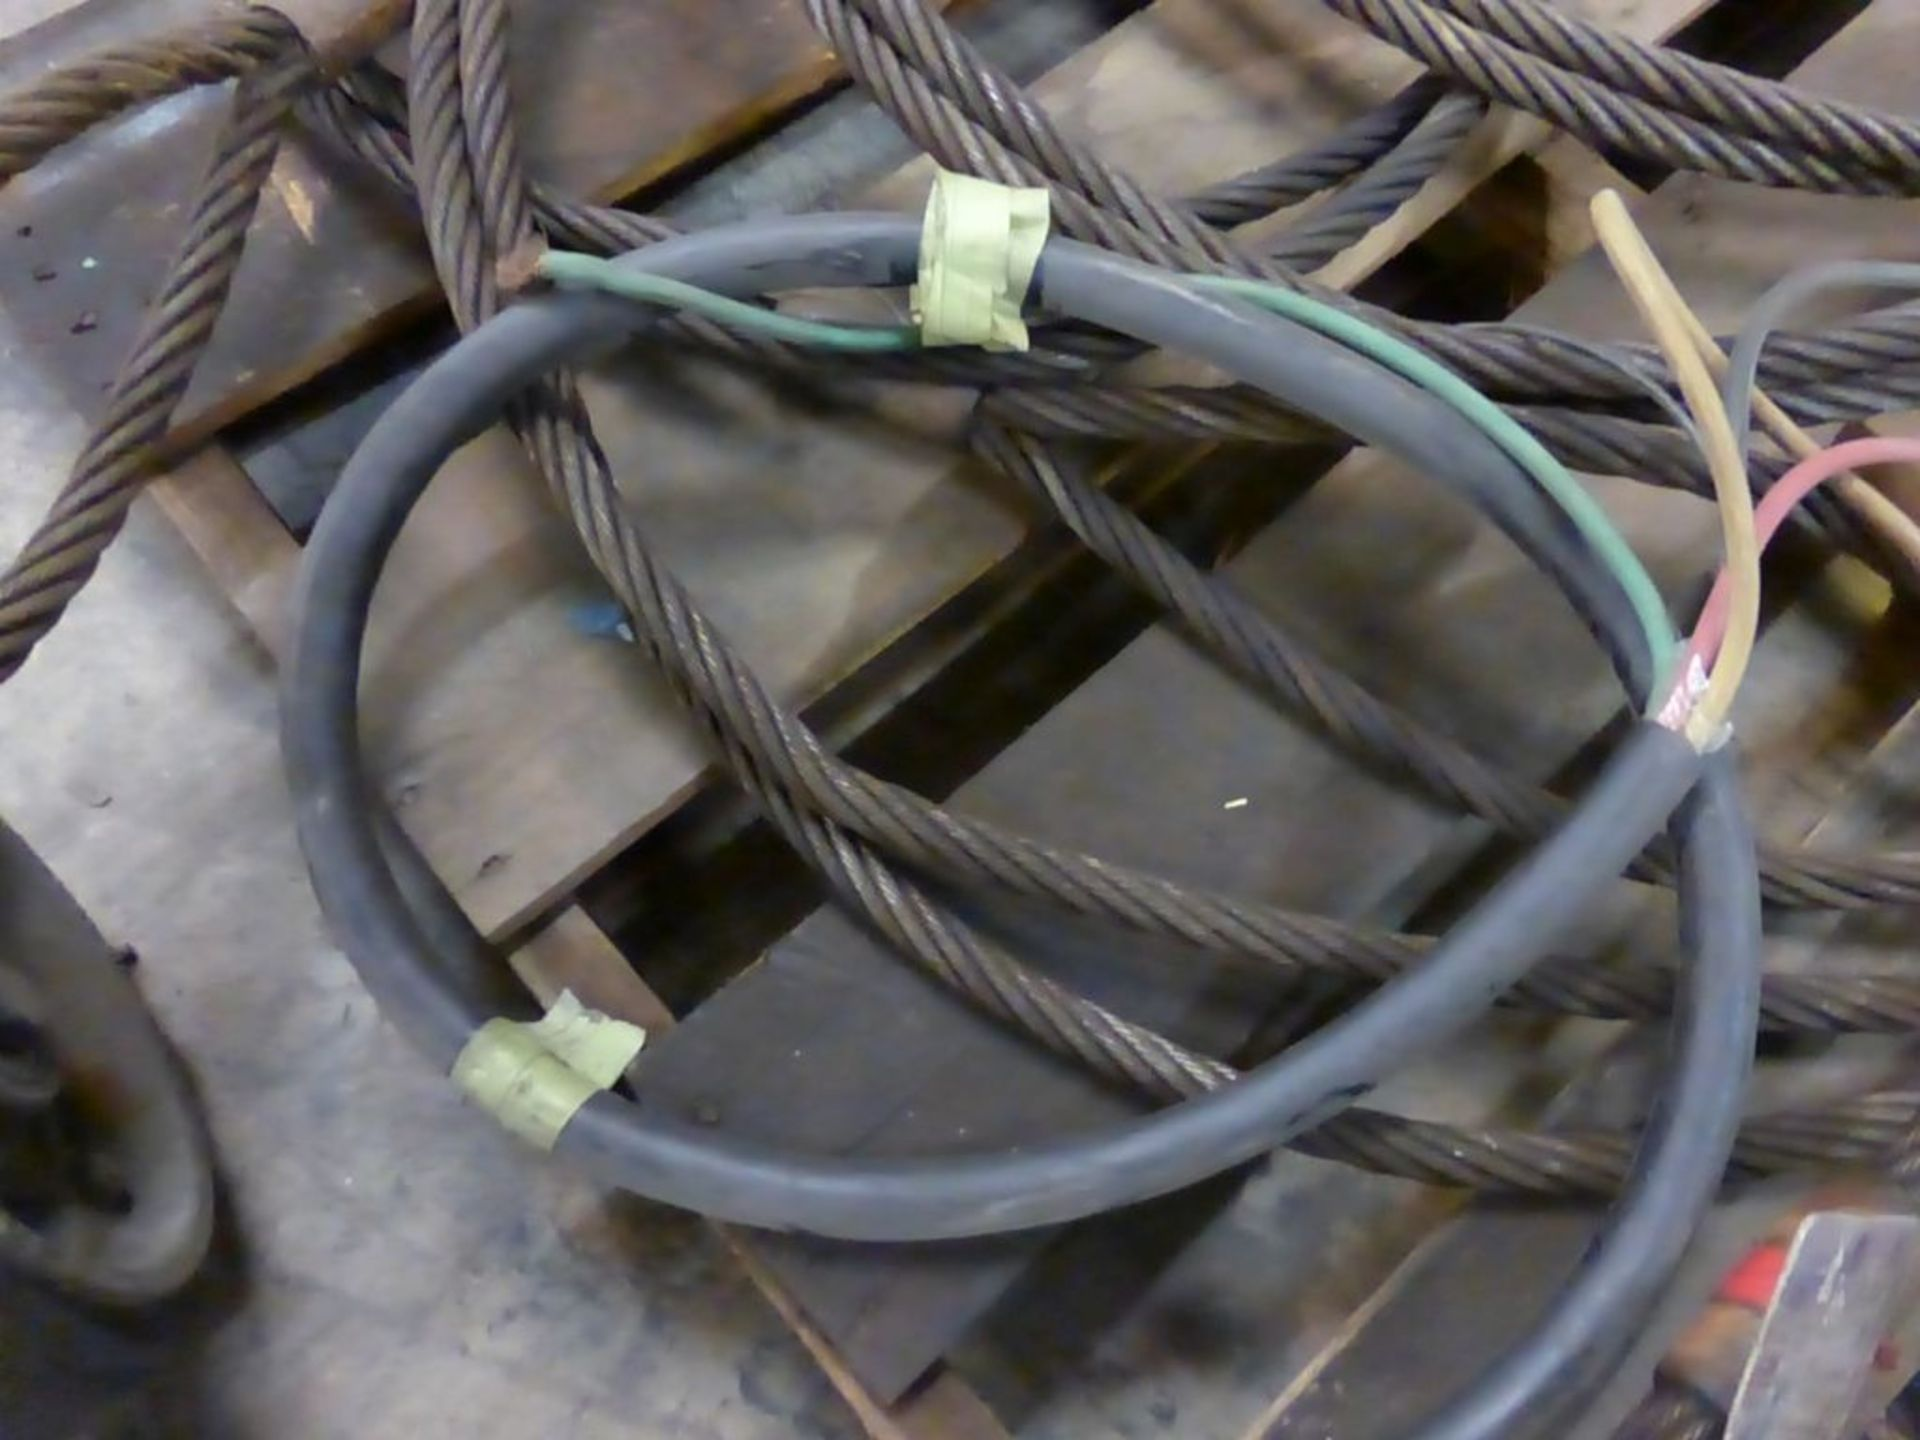 Lot of Pennsylvania Tool Wire Rope - Image 9 of 12